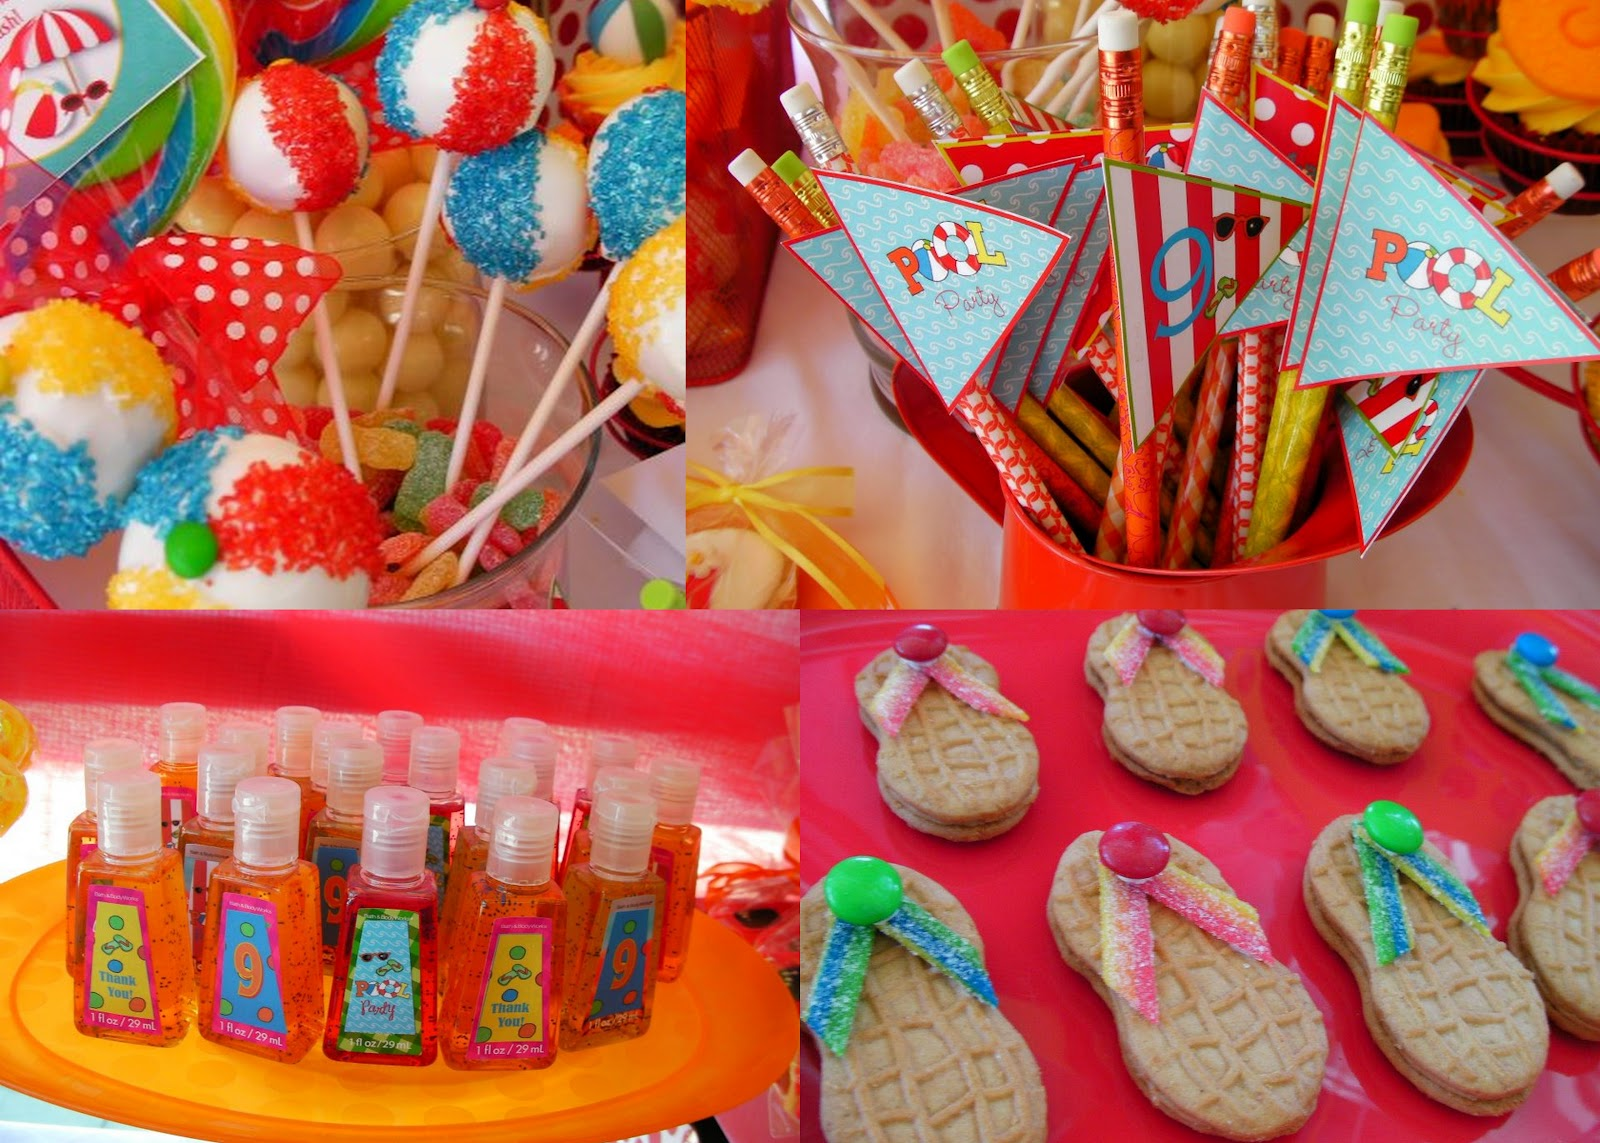 Pool Party Food Ideas For Teenagers summer splash party 110 Best Images About Party Ideas On Pinterest Pool Party Foods Pools And Pool Party Favors